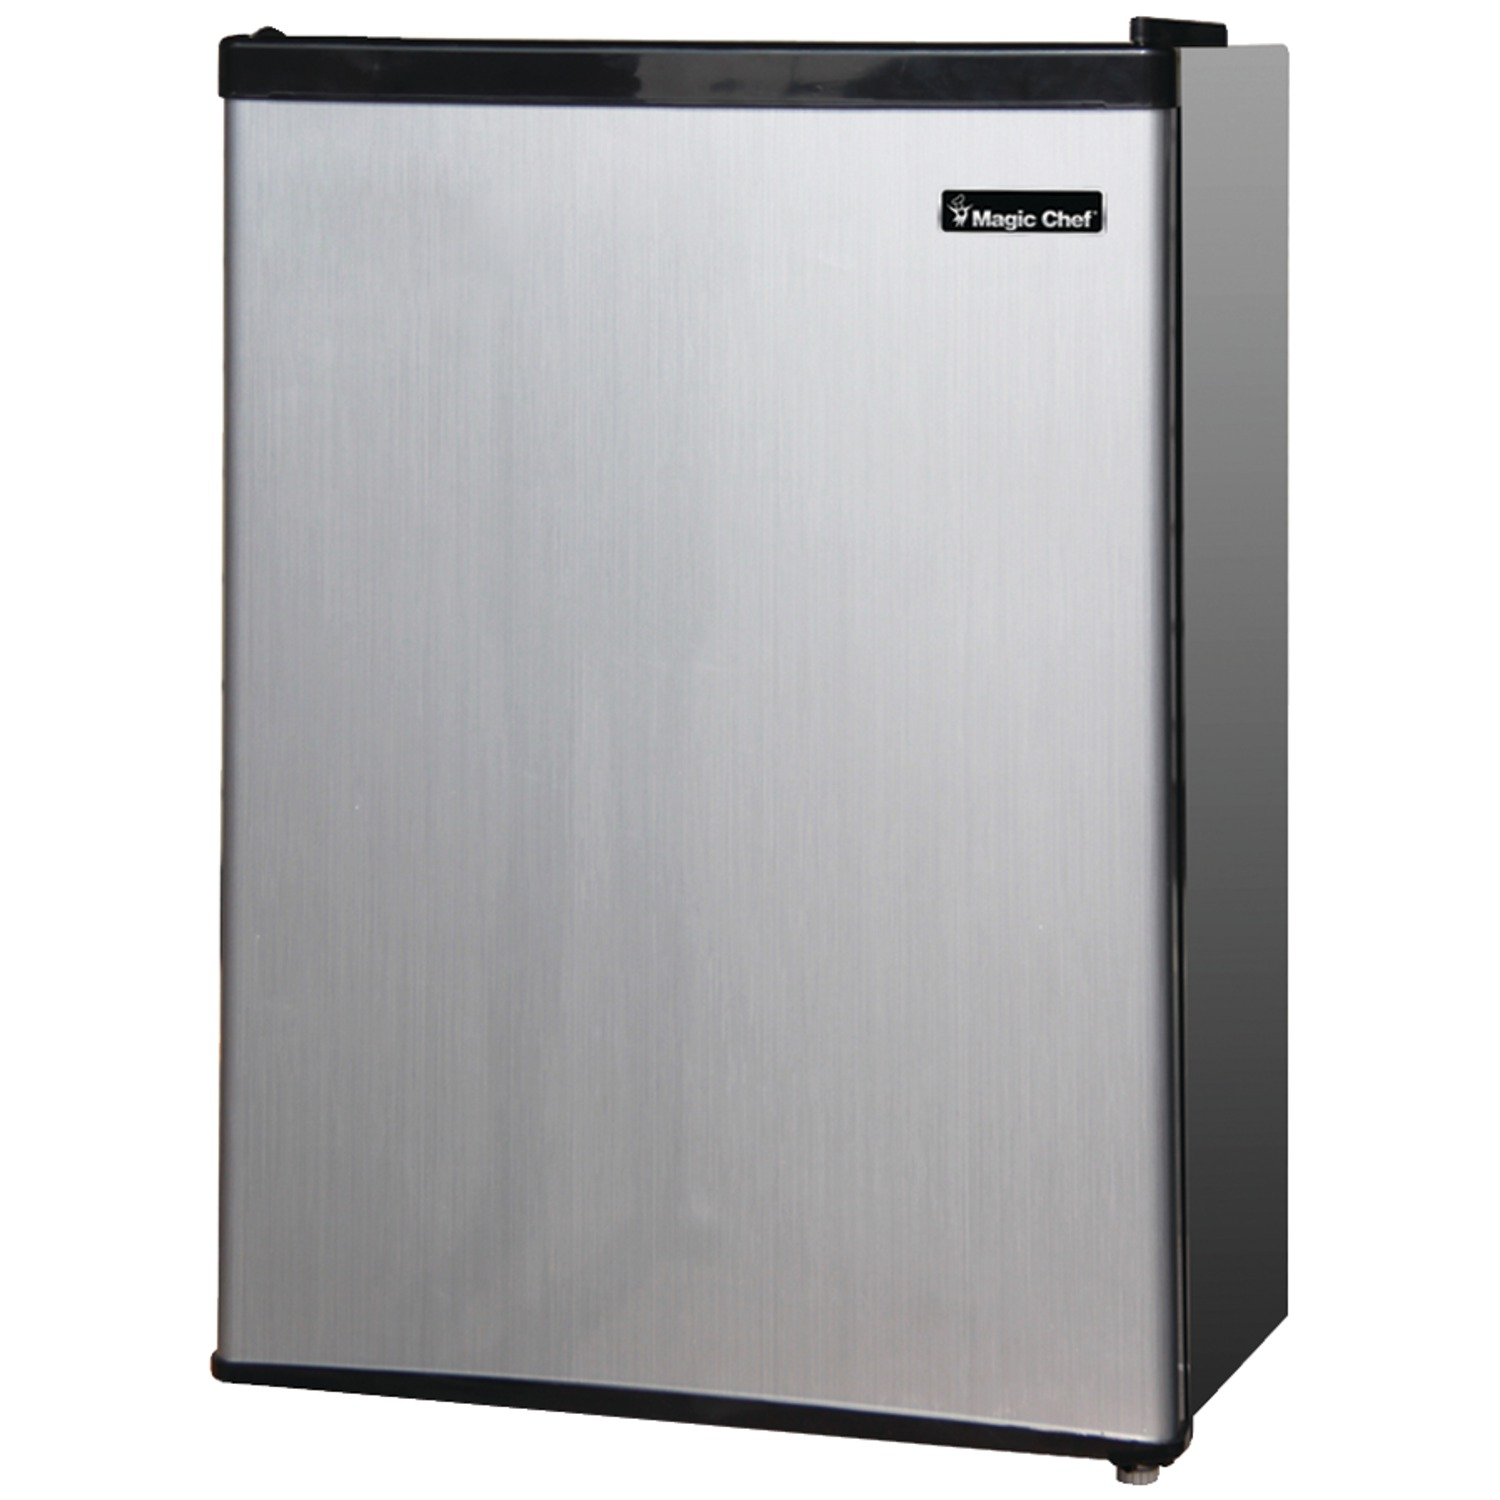 Image for Magic Chef - Refrigerator - Freestanding - Stainless Steel from Circuit City